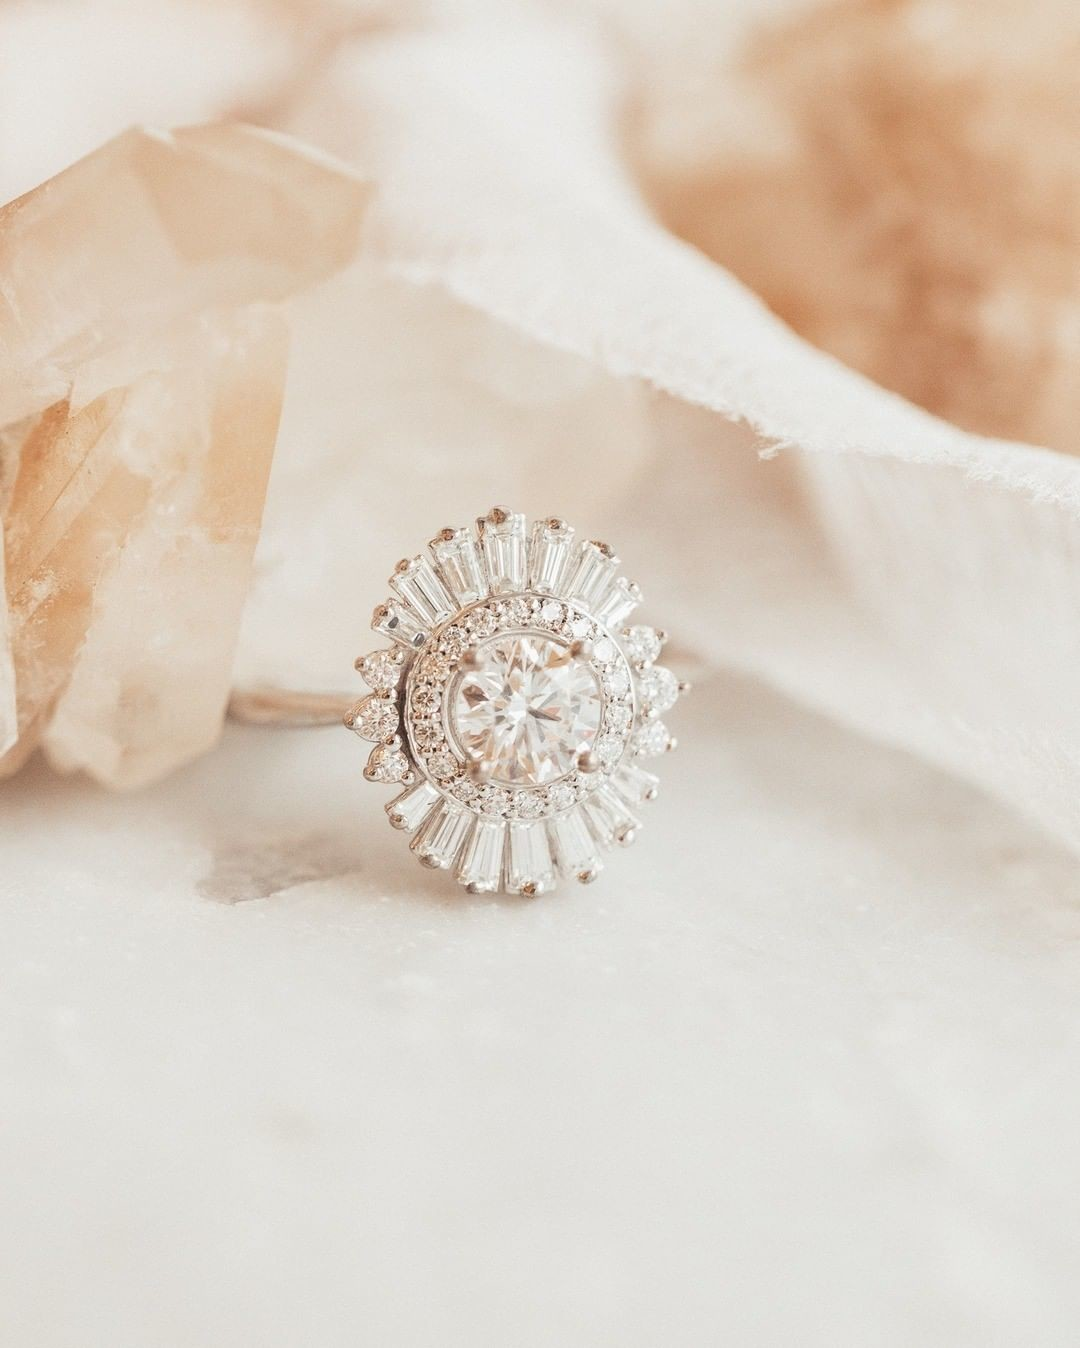 Swooning over our brand new baguette halo ring with a round diamond in 14k white gold! Check her out today at our Tennyson location